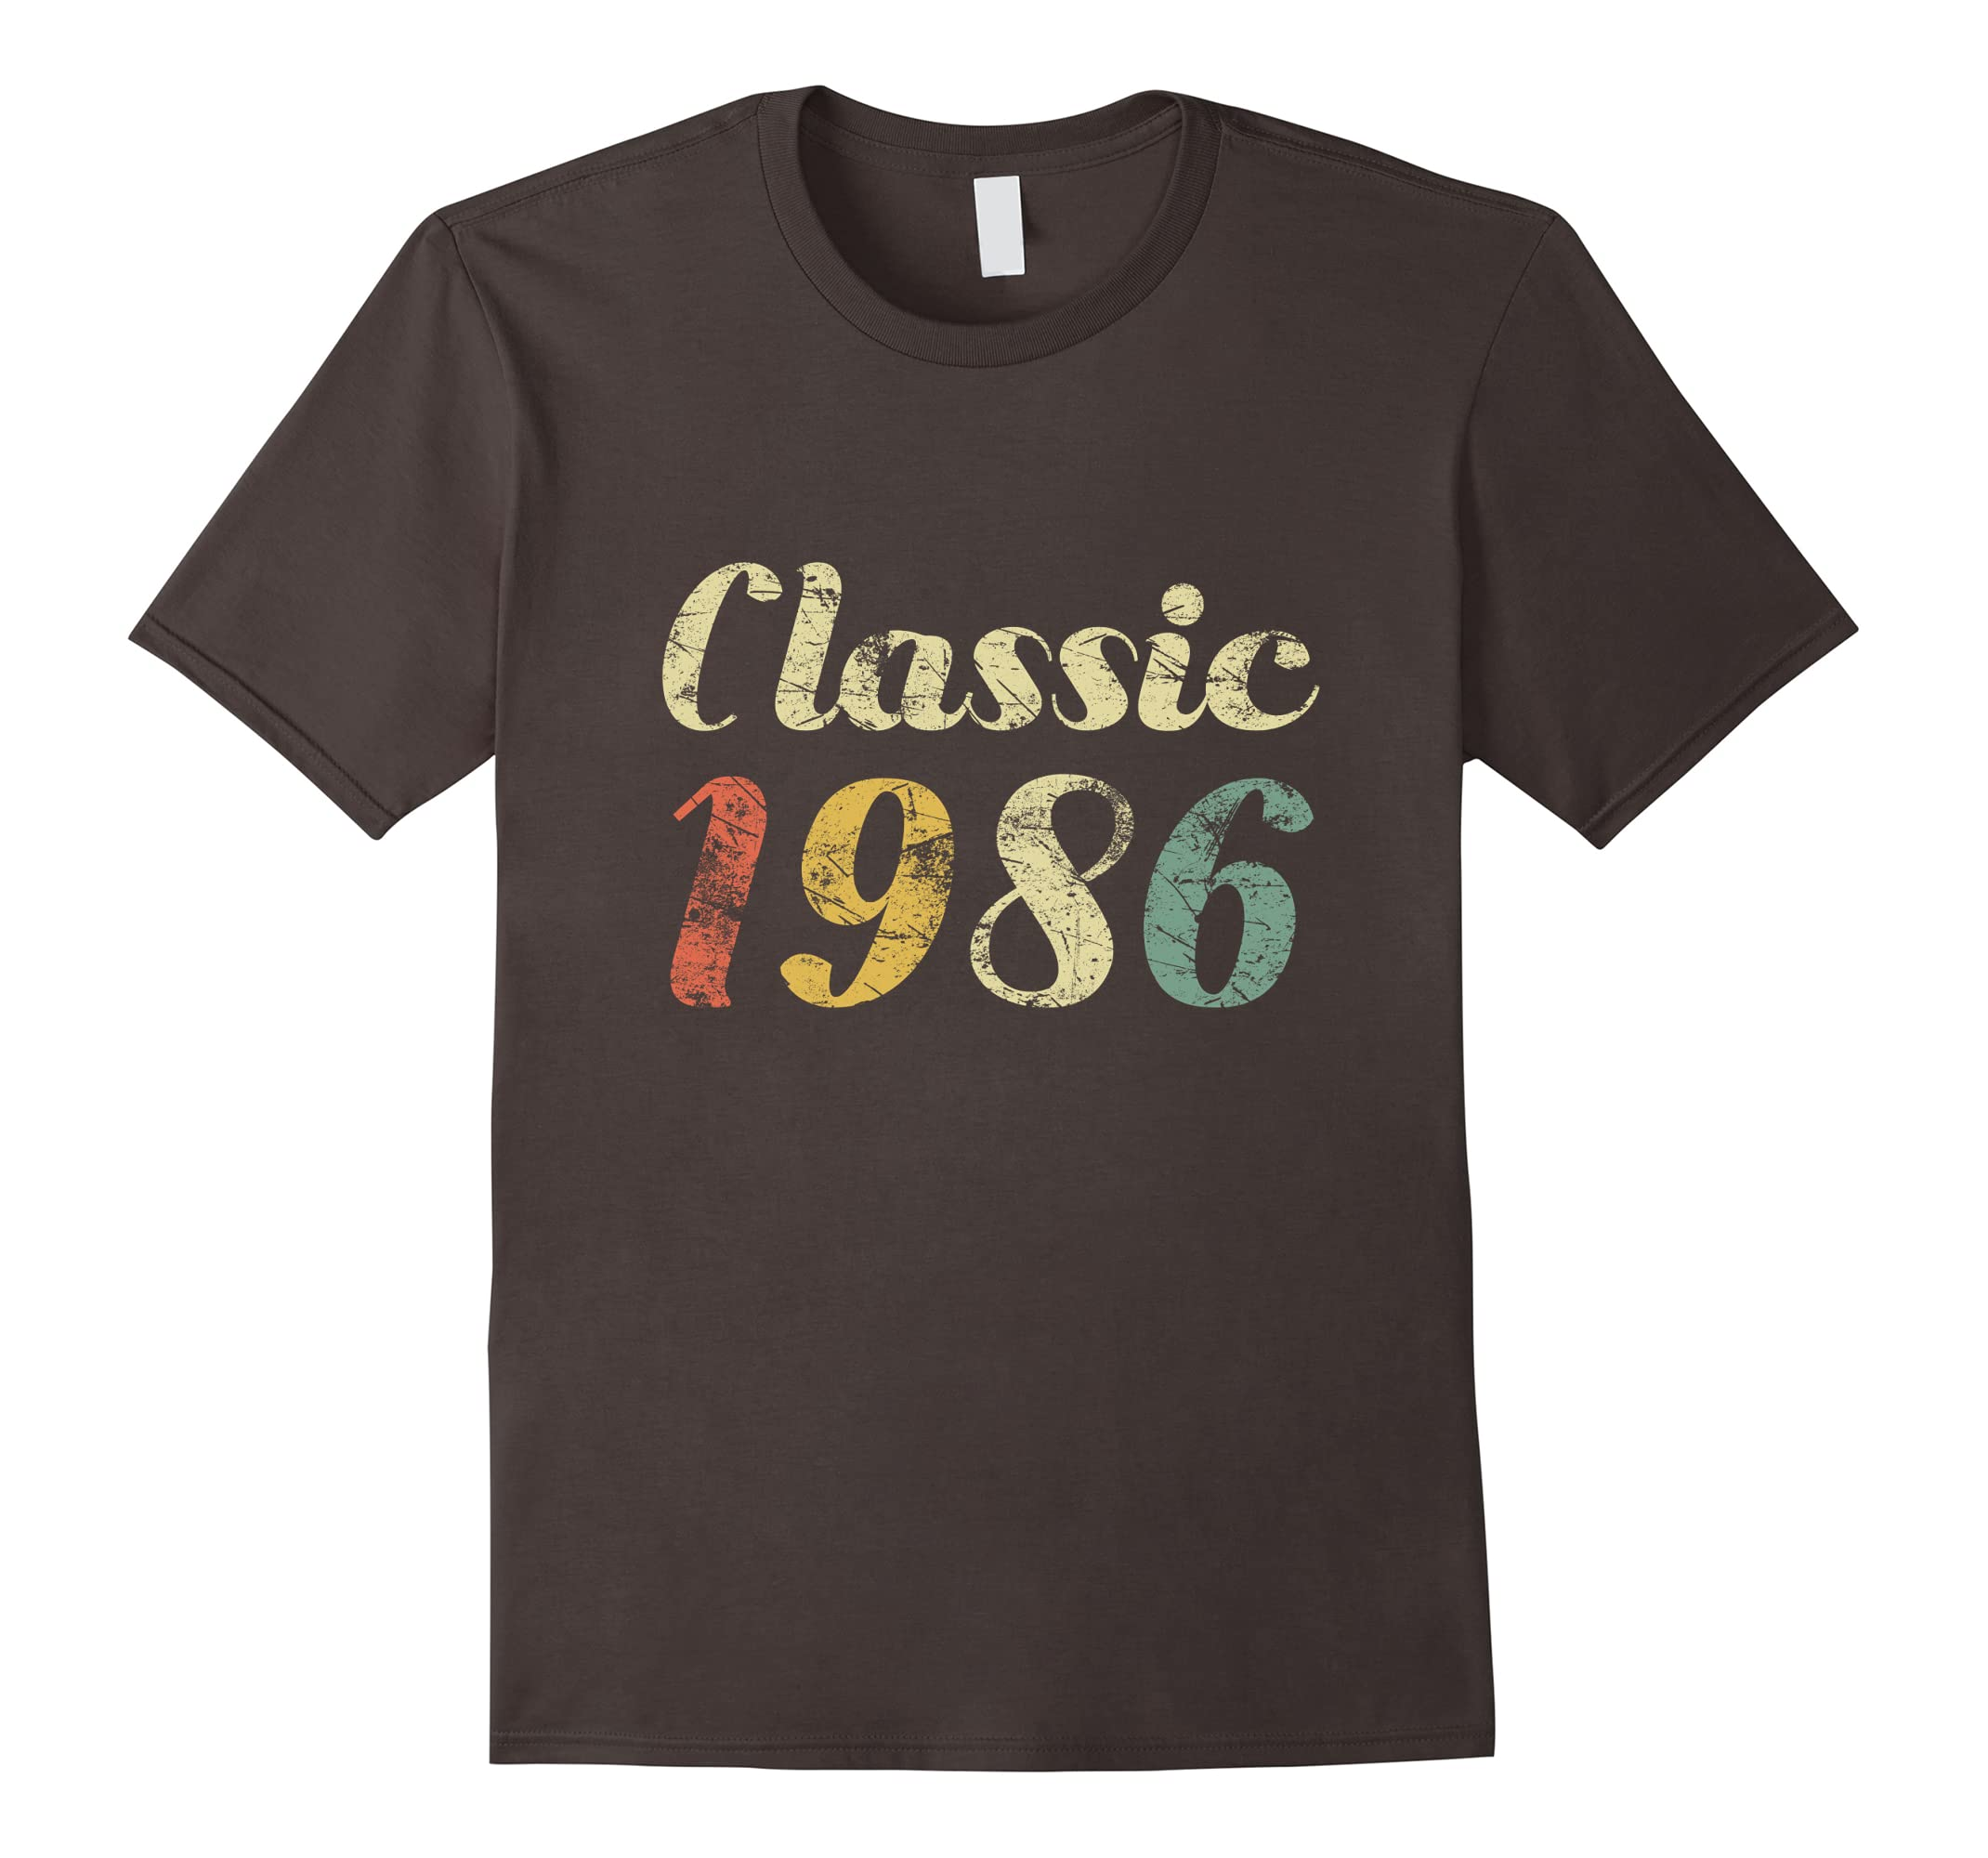 32 Year Old Vintage Distressed Birthday Gift 1986 Shirt-ah my shirt one gift